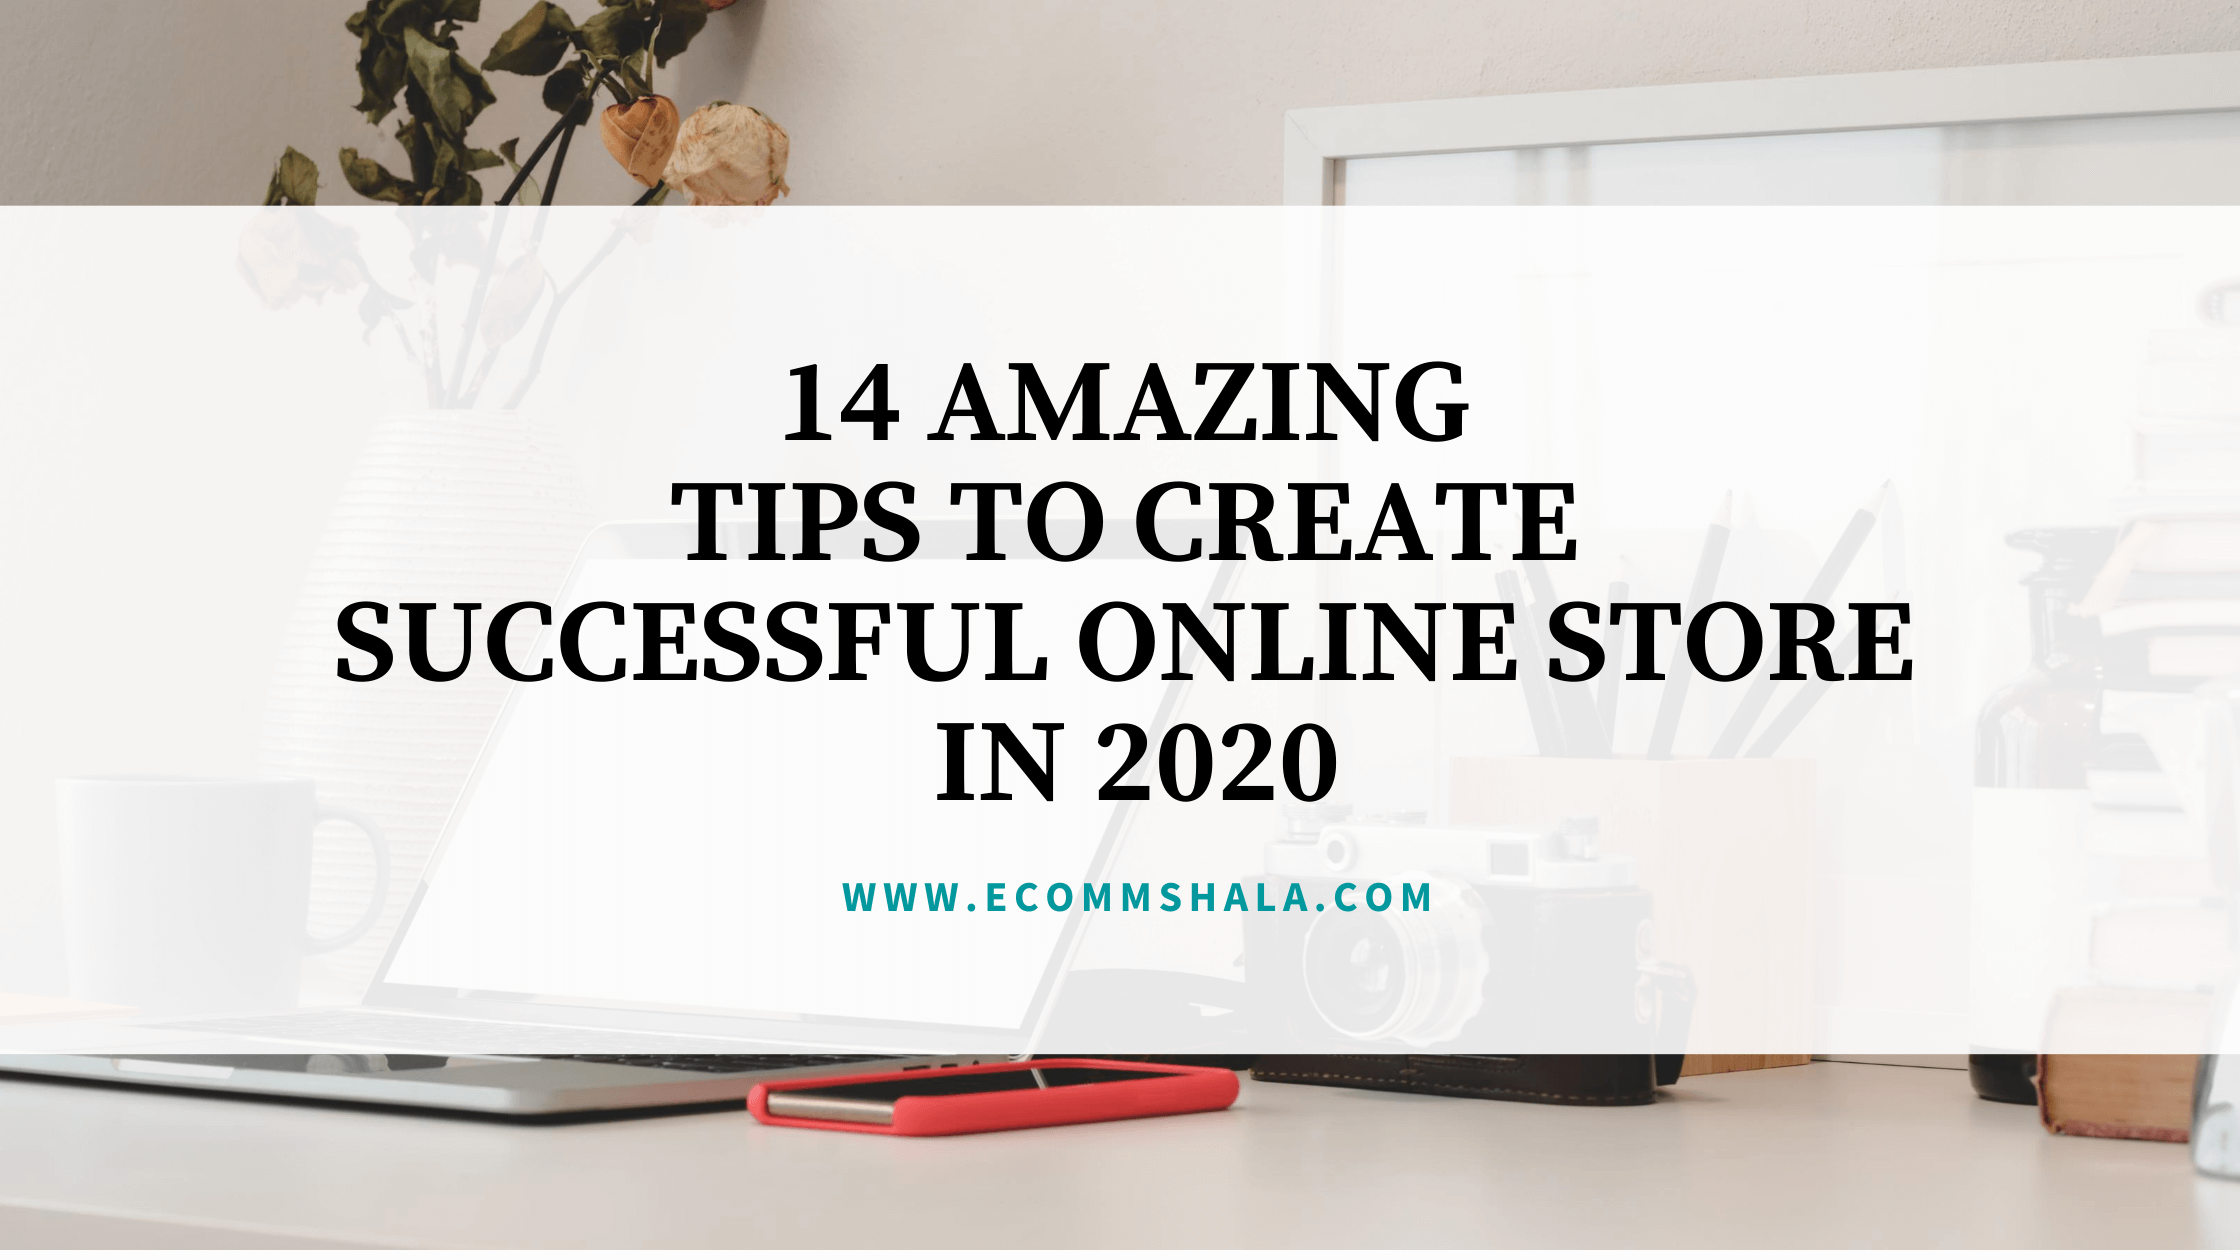 14 Amazing Tips to create successful Online Store in 2020